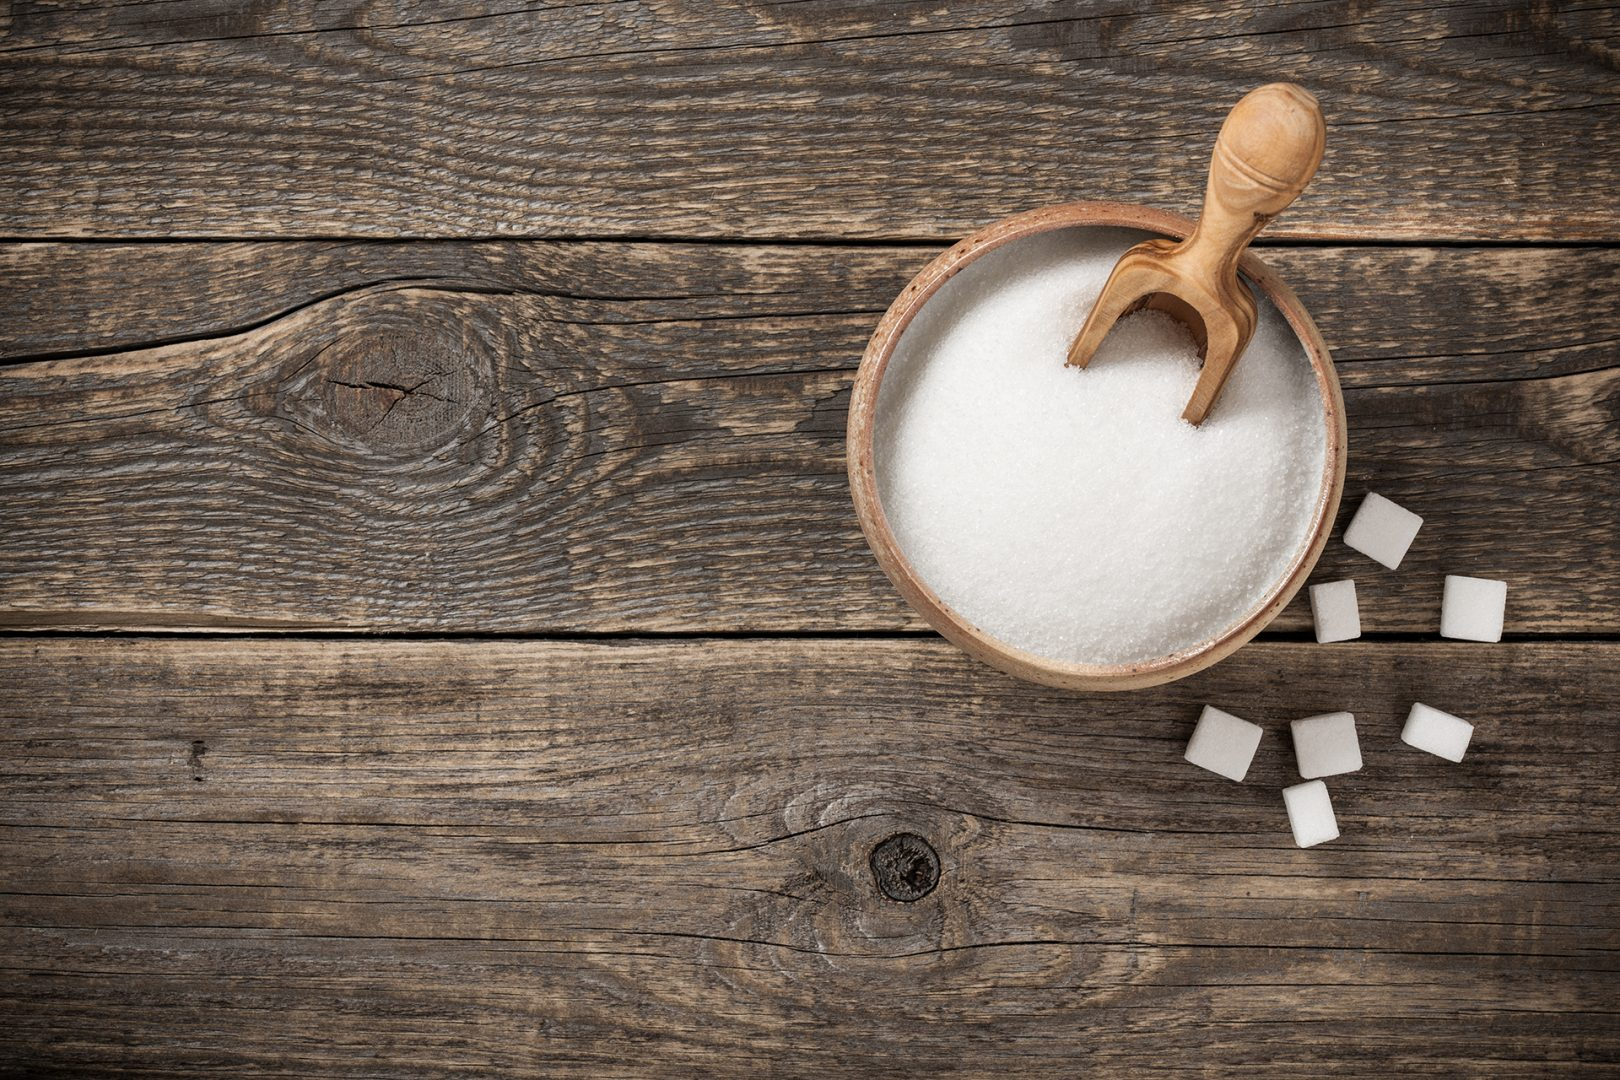 Feeling Sore? Sugar Might be Causing Your Inflammation